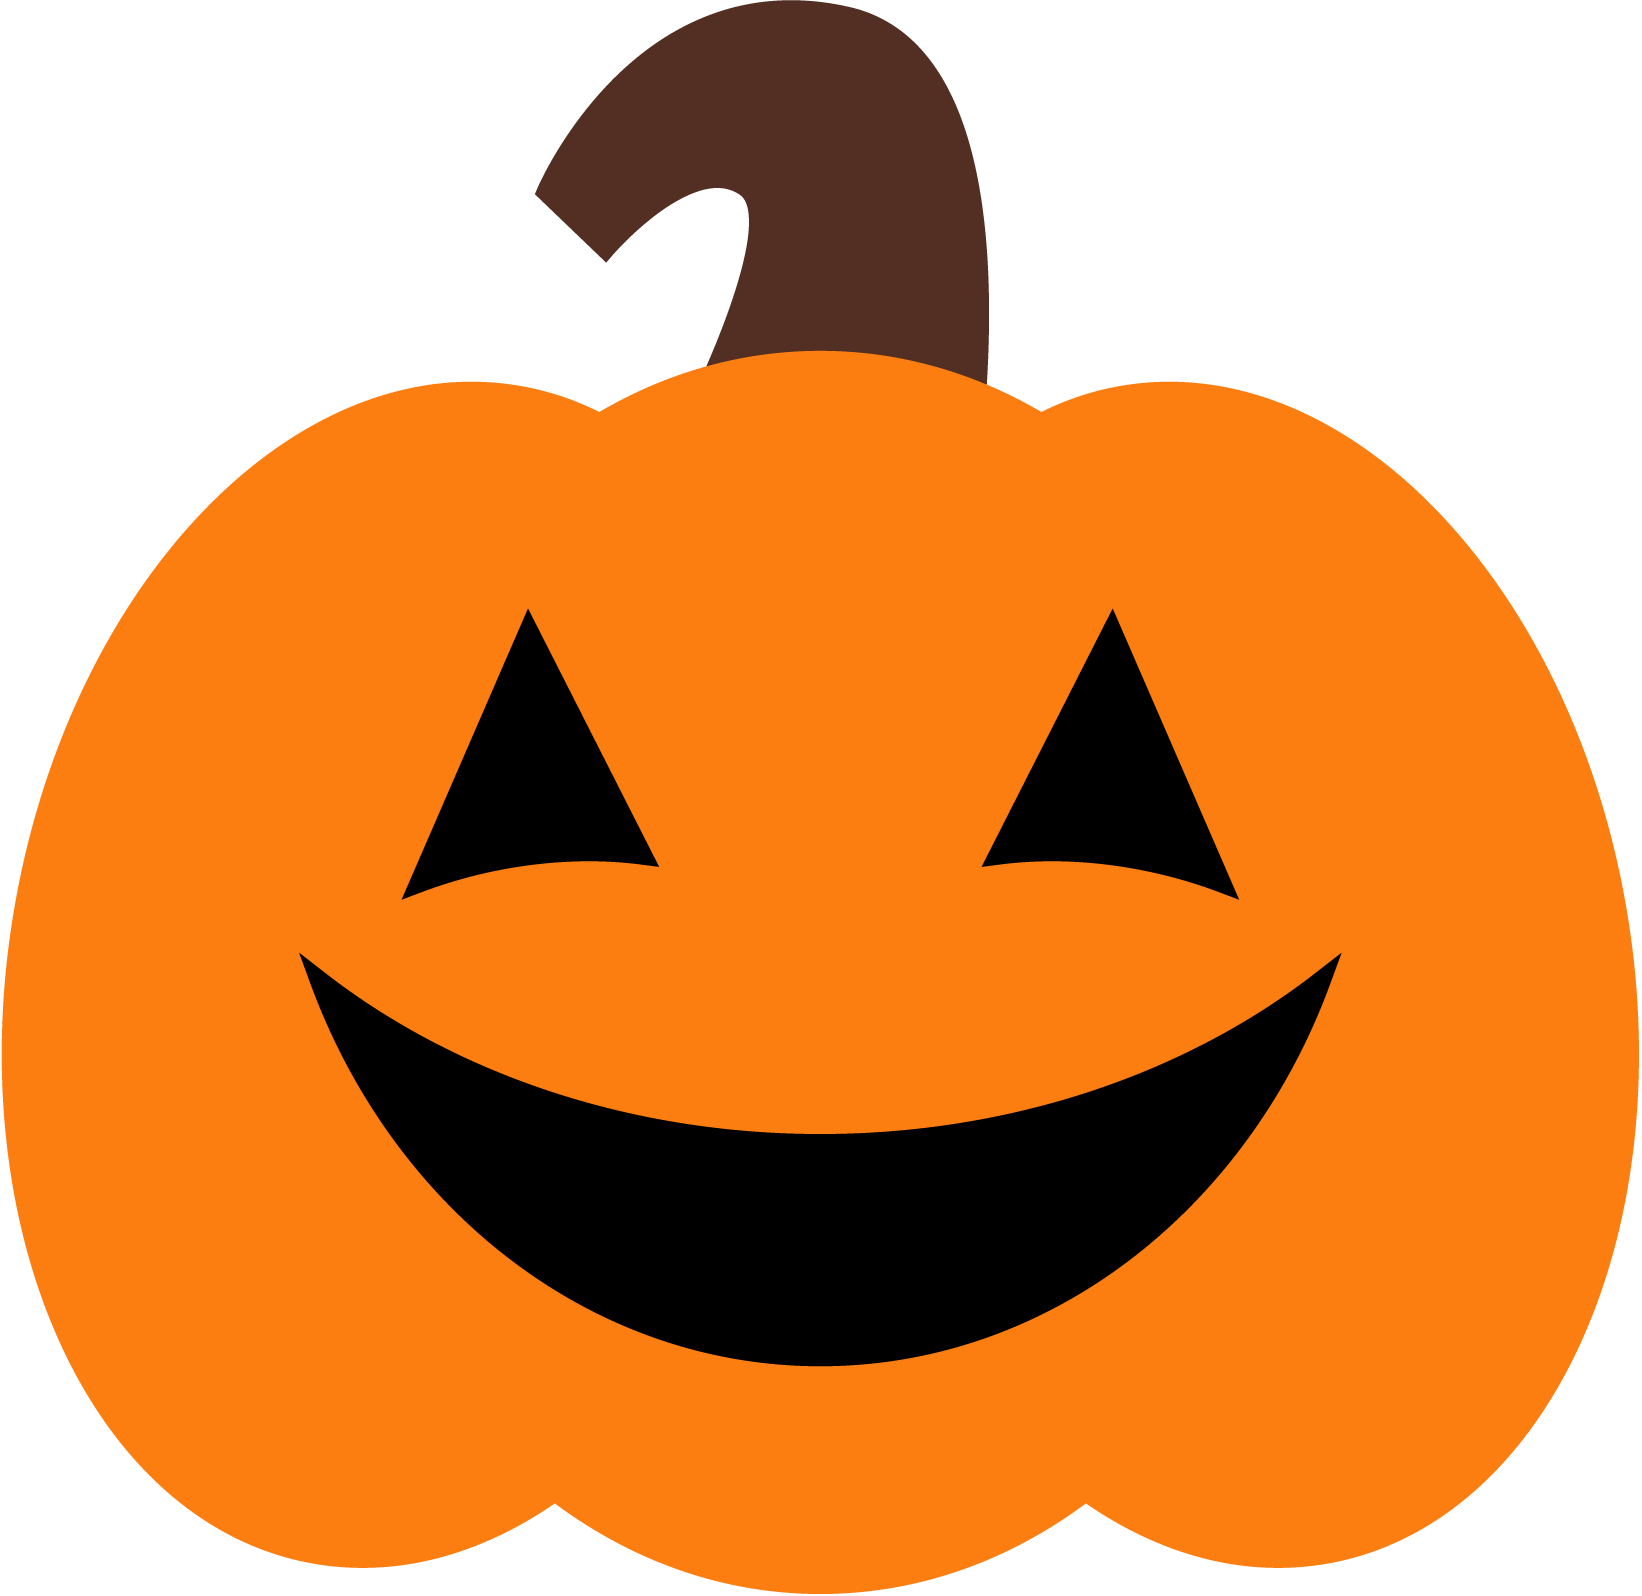 Best Cute Pumpkin Clipart #22592 - Clipartion.com